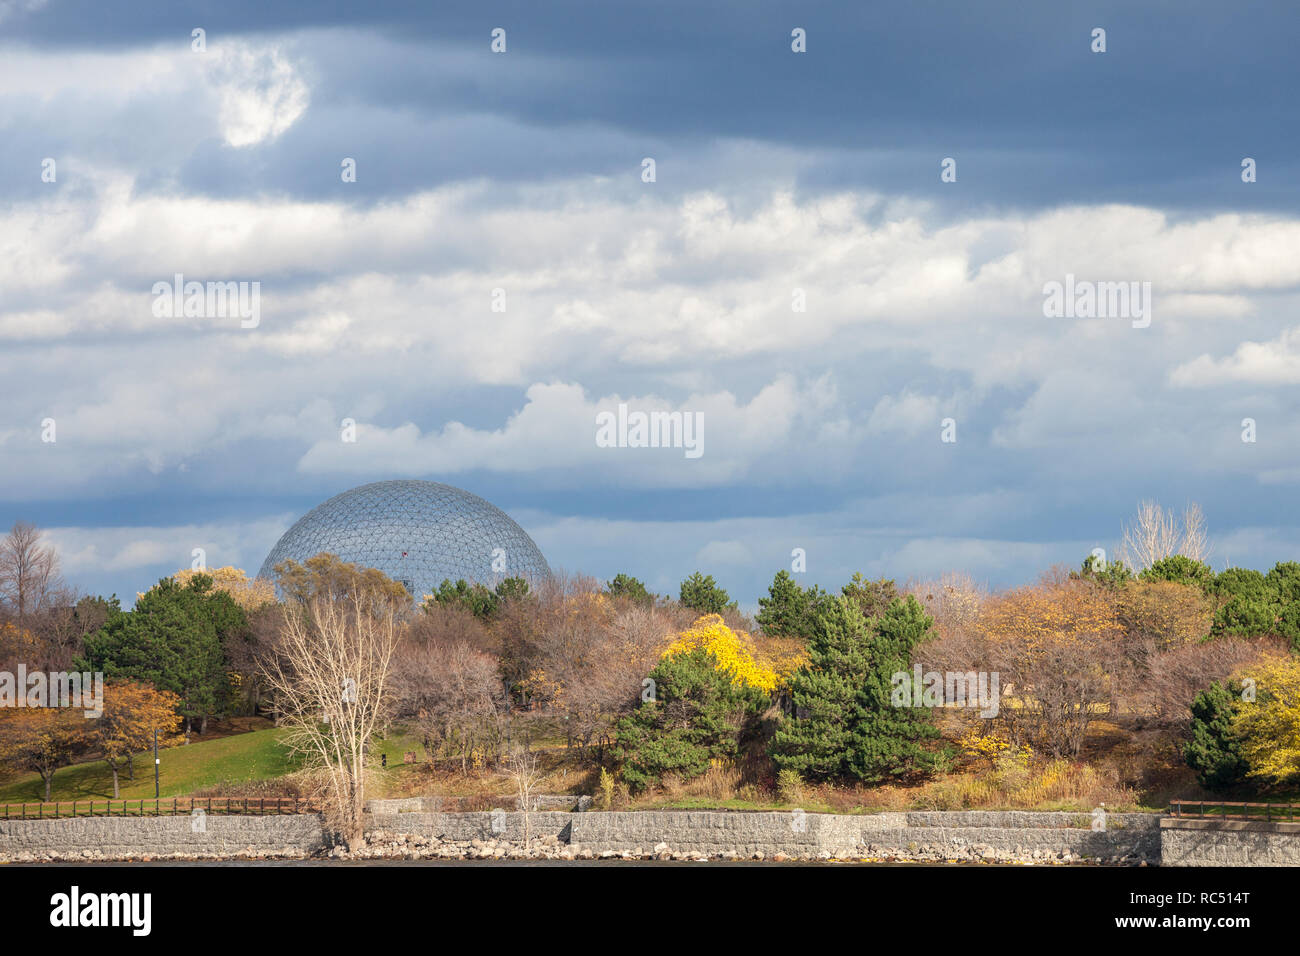 MONTREAL, CANADA - NOVEMBER 7, 2018: Montreal Biosphere, on Ile Sainte Helene Island, in Jean Drapeau park, taken during an autumn afternoon. It is on Stock Photo